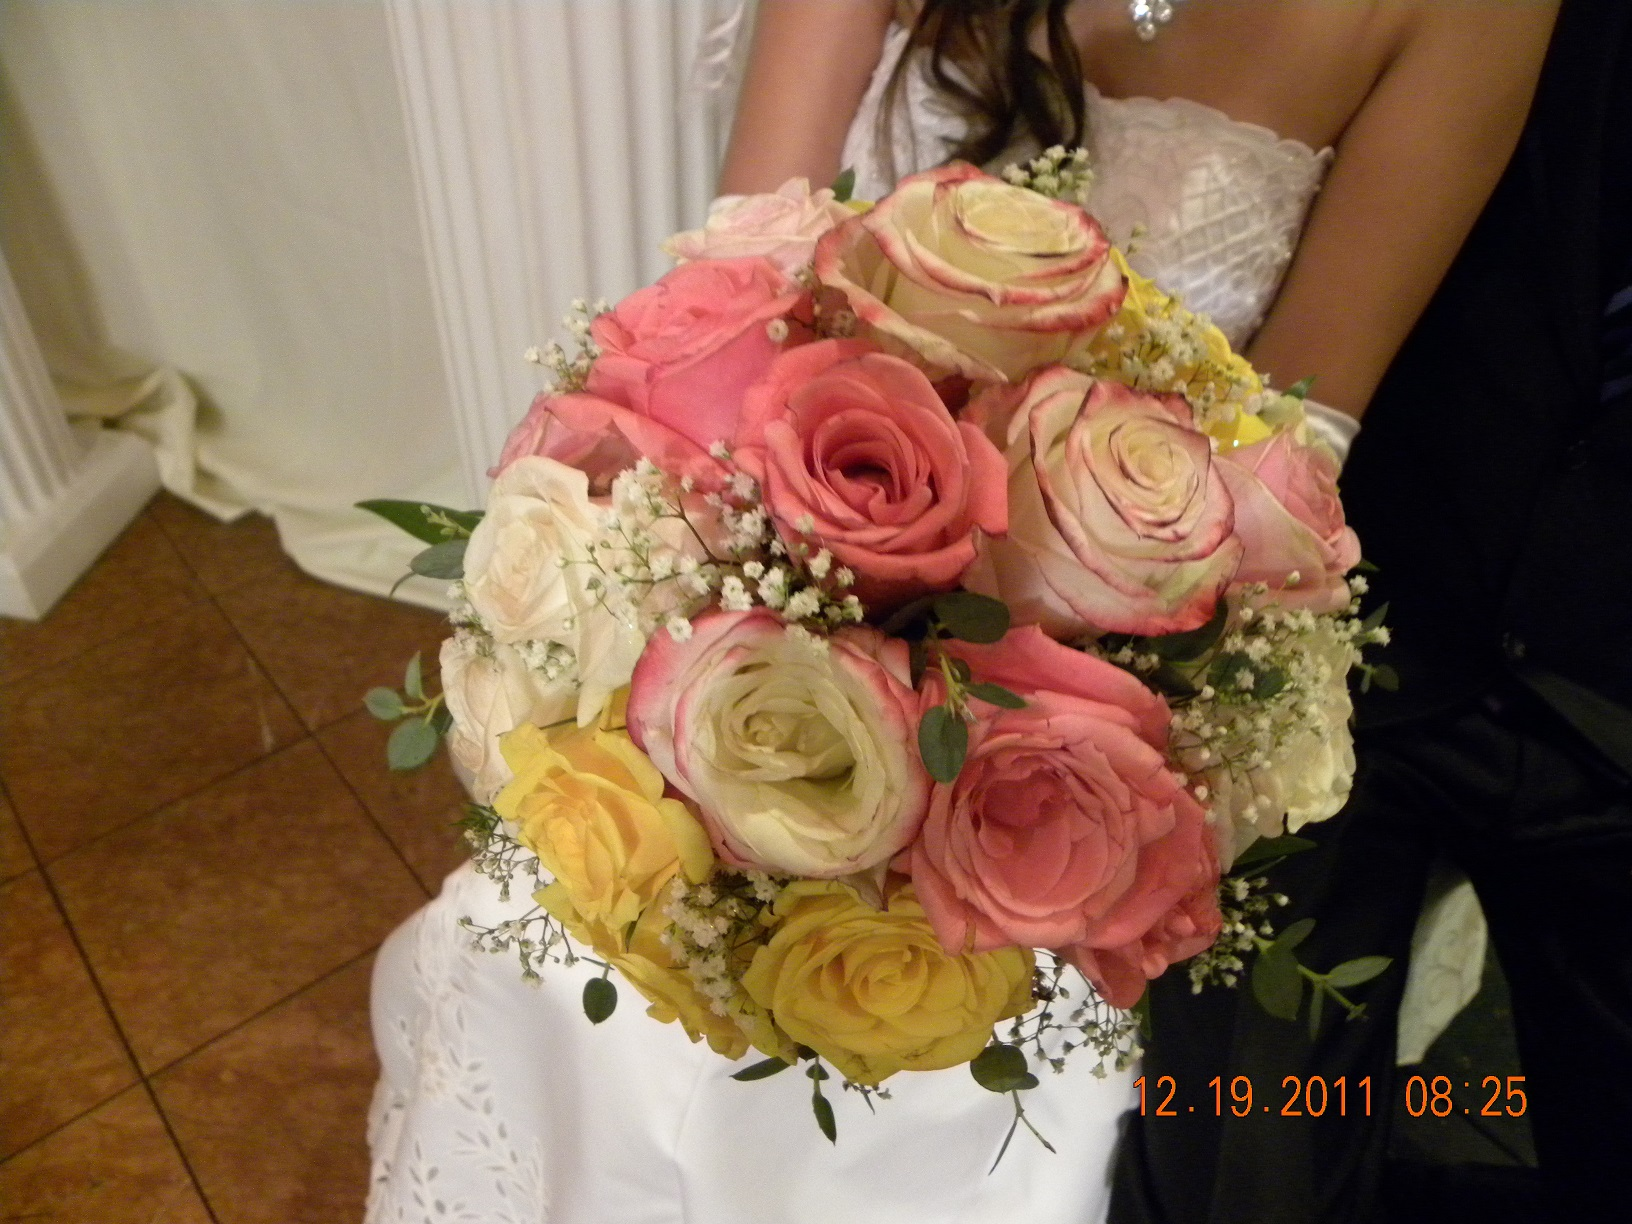 Hand bouquet anns flowers and gifts online store powered by hand bouquet izmirmasajfo